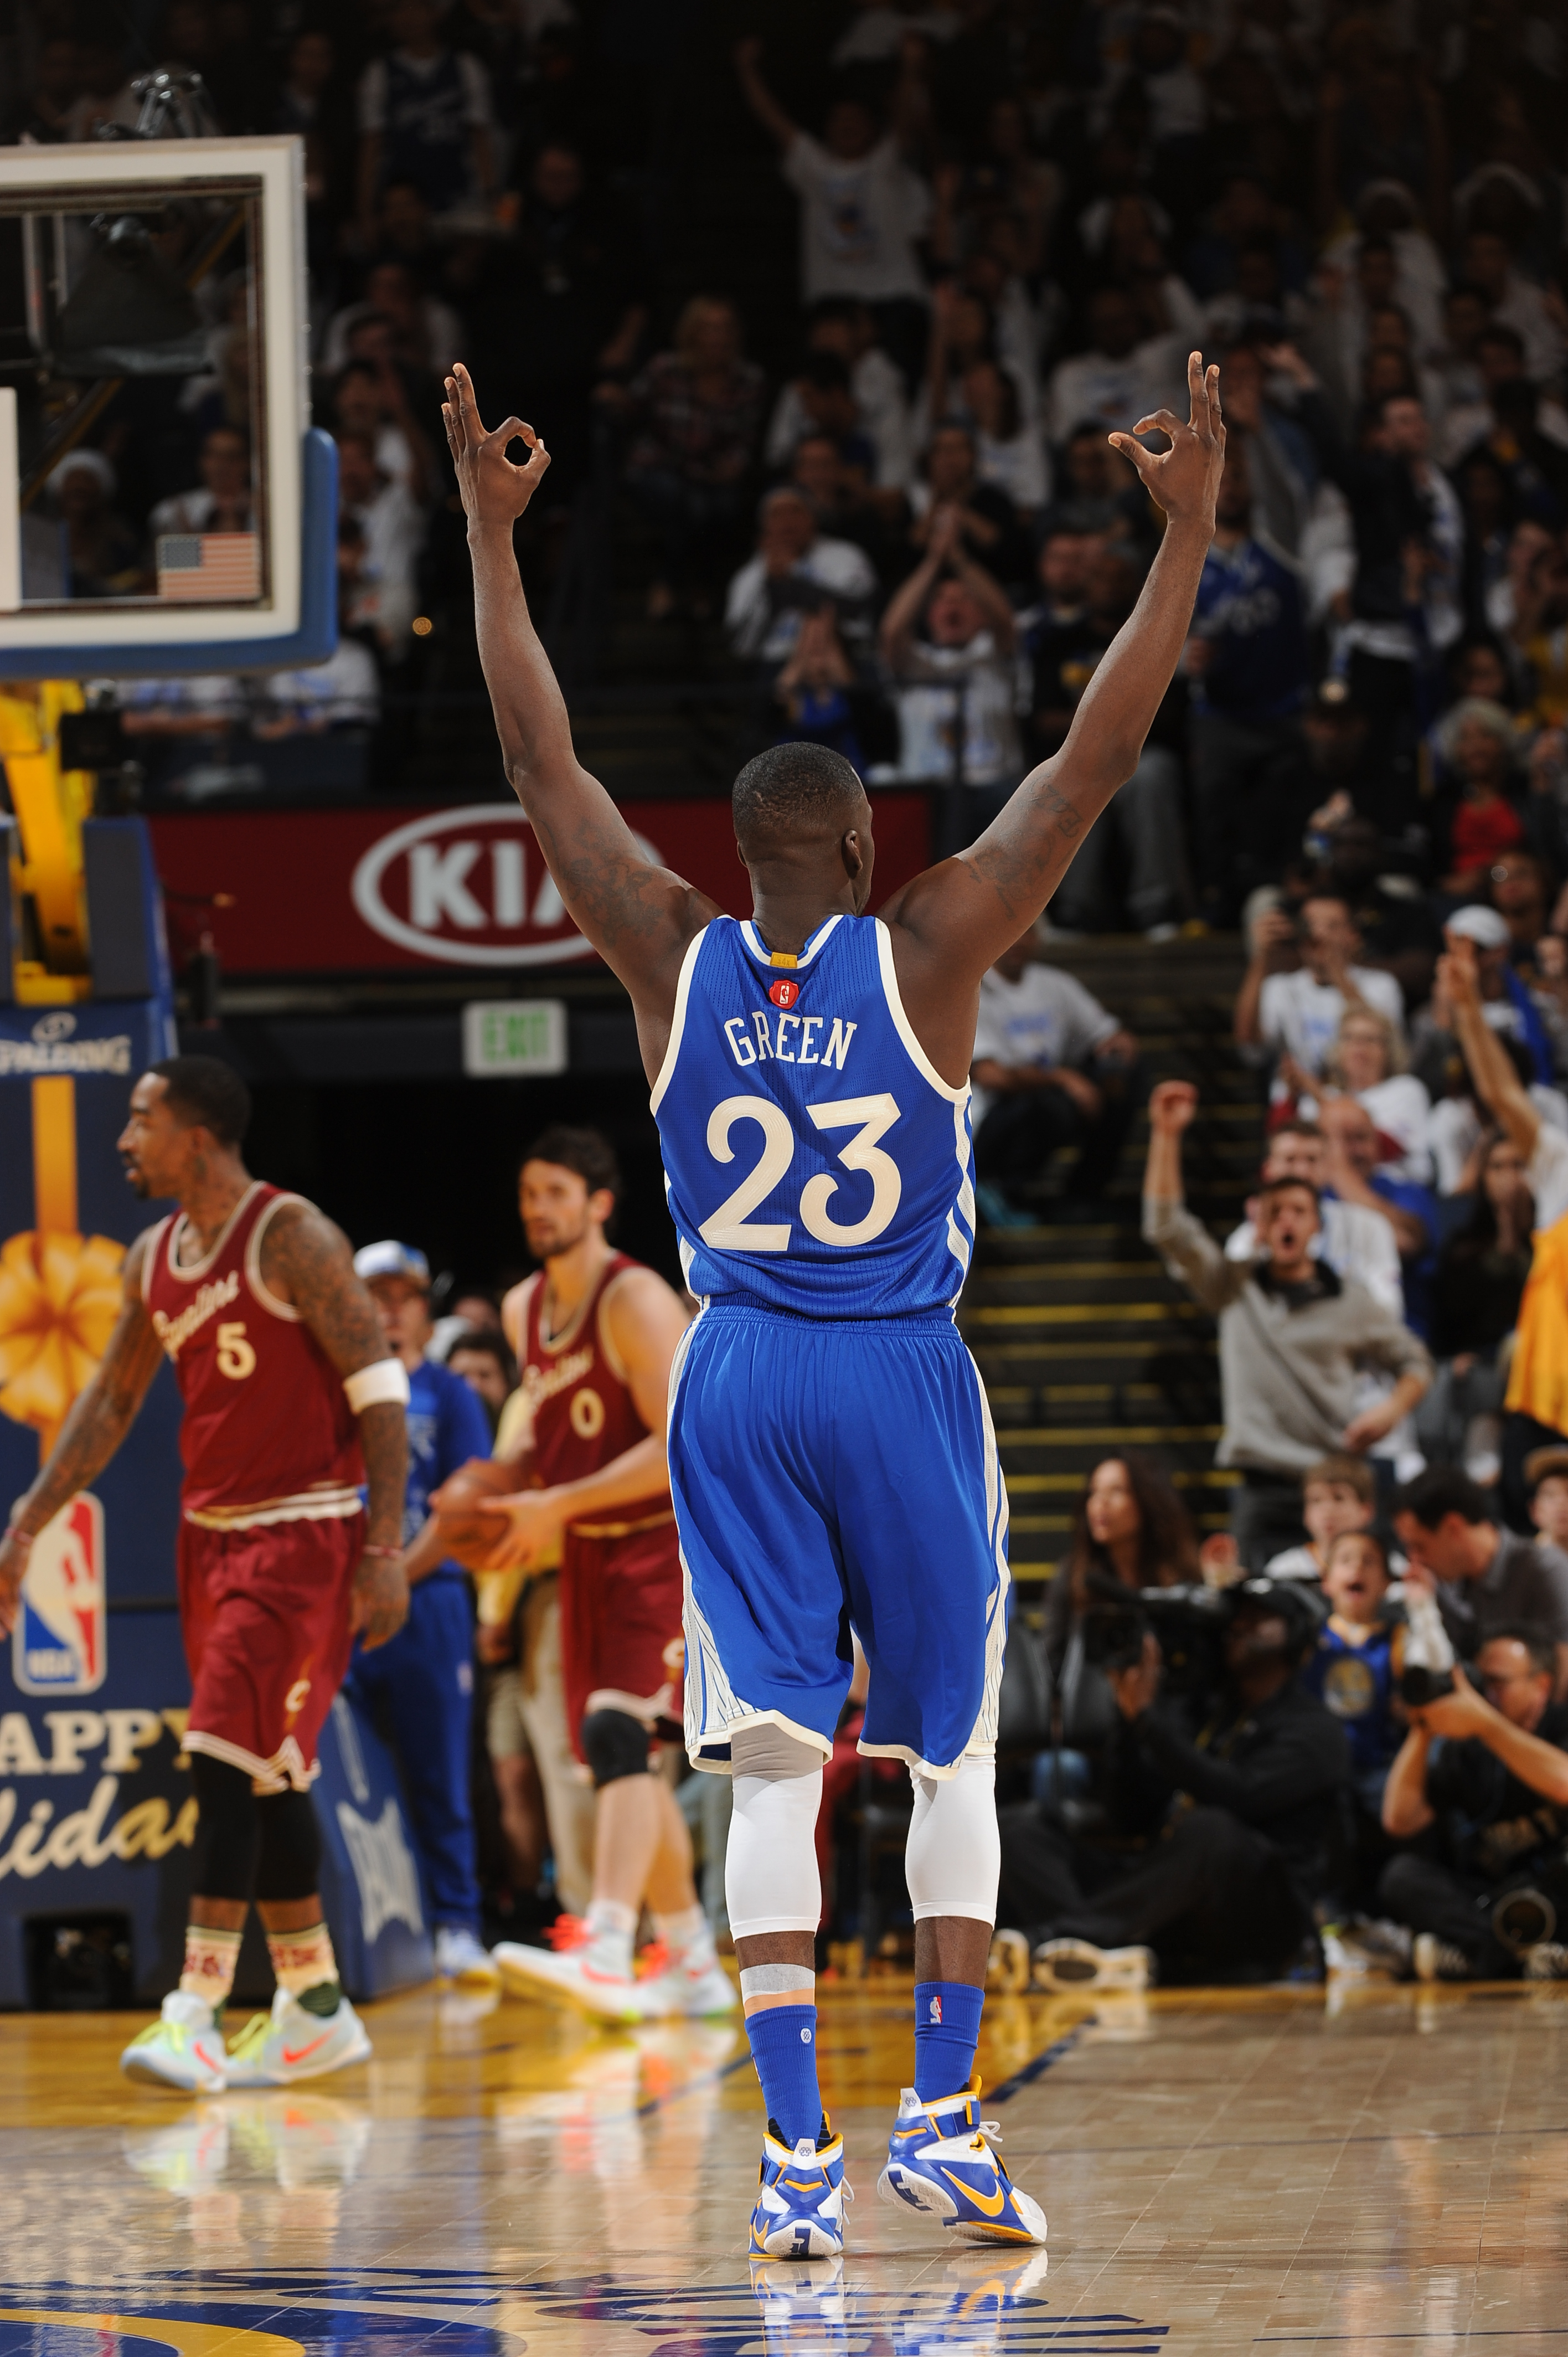 OAKLAND, CA - DECEMBER 25:  Draymond Green #23 of the Golden State Warriors responds after hitting a three pointer against the Cleveland Cavaliers on December 25, 2015 at ORACLE Arena in Oakland,California.(Photo by Noah Graham/NBAE via Getty Images)